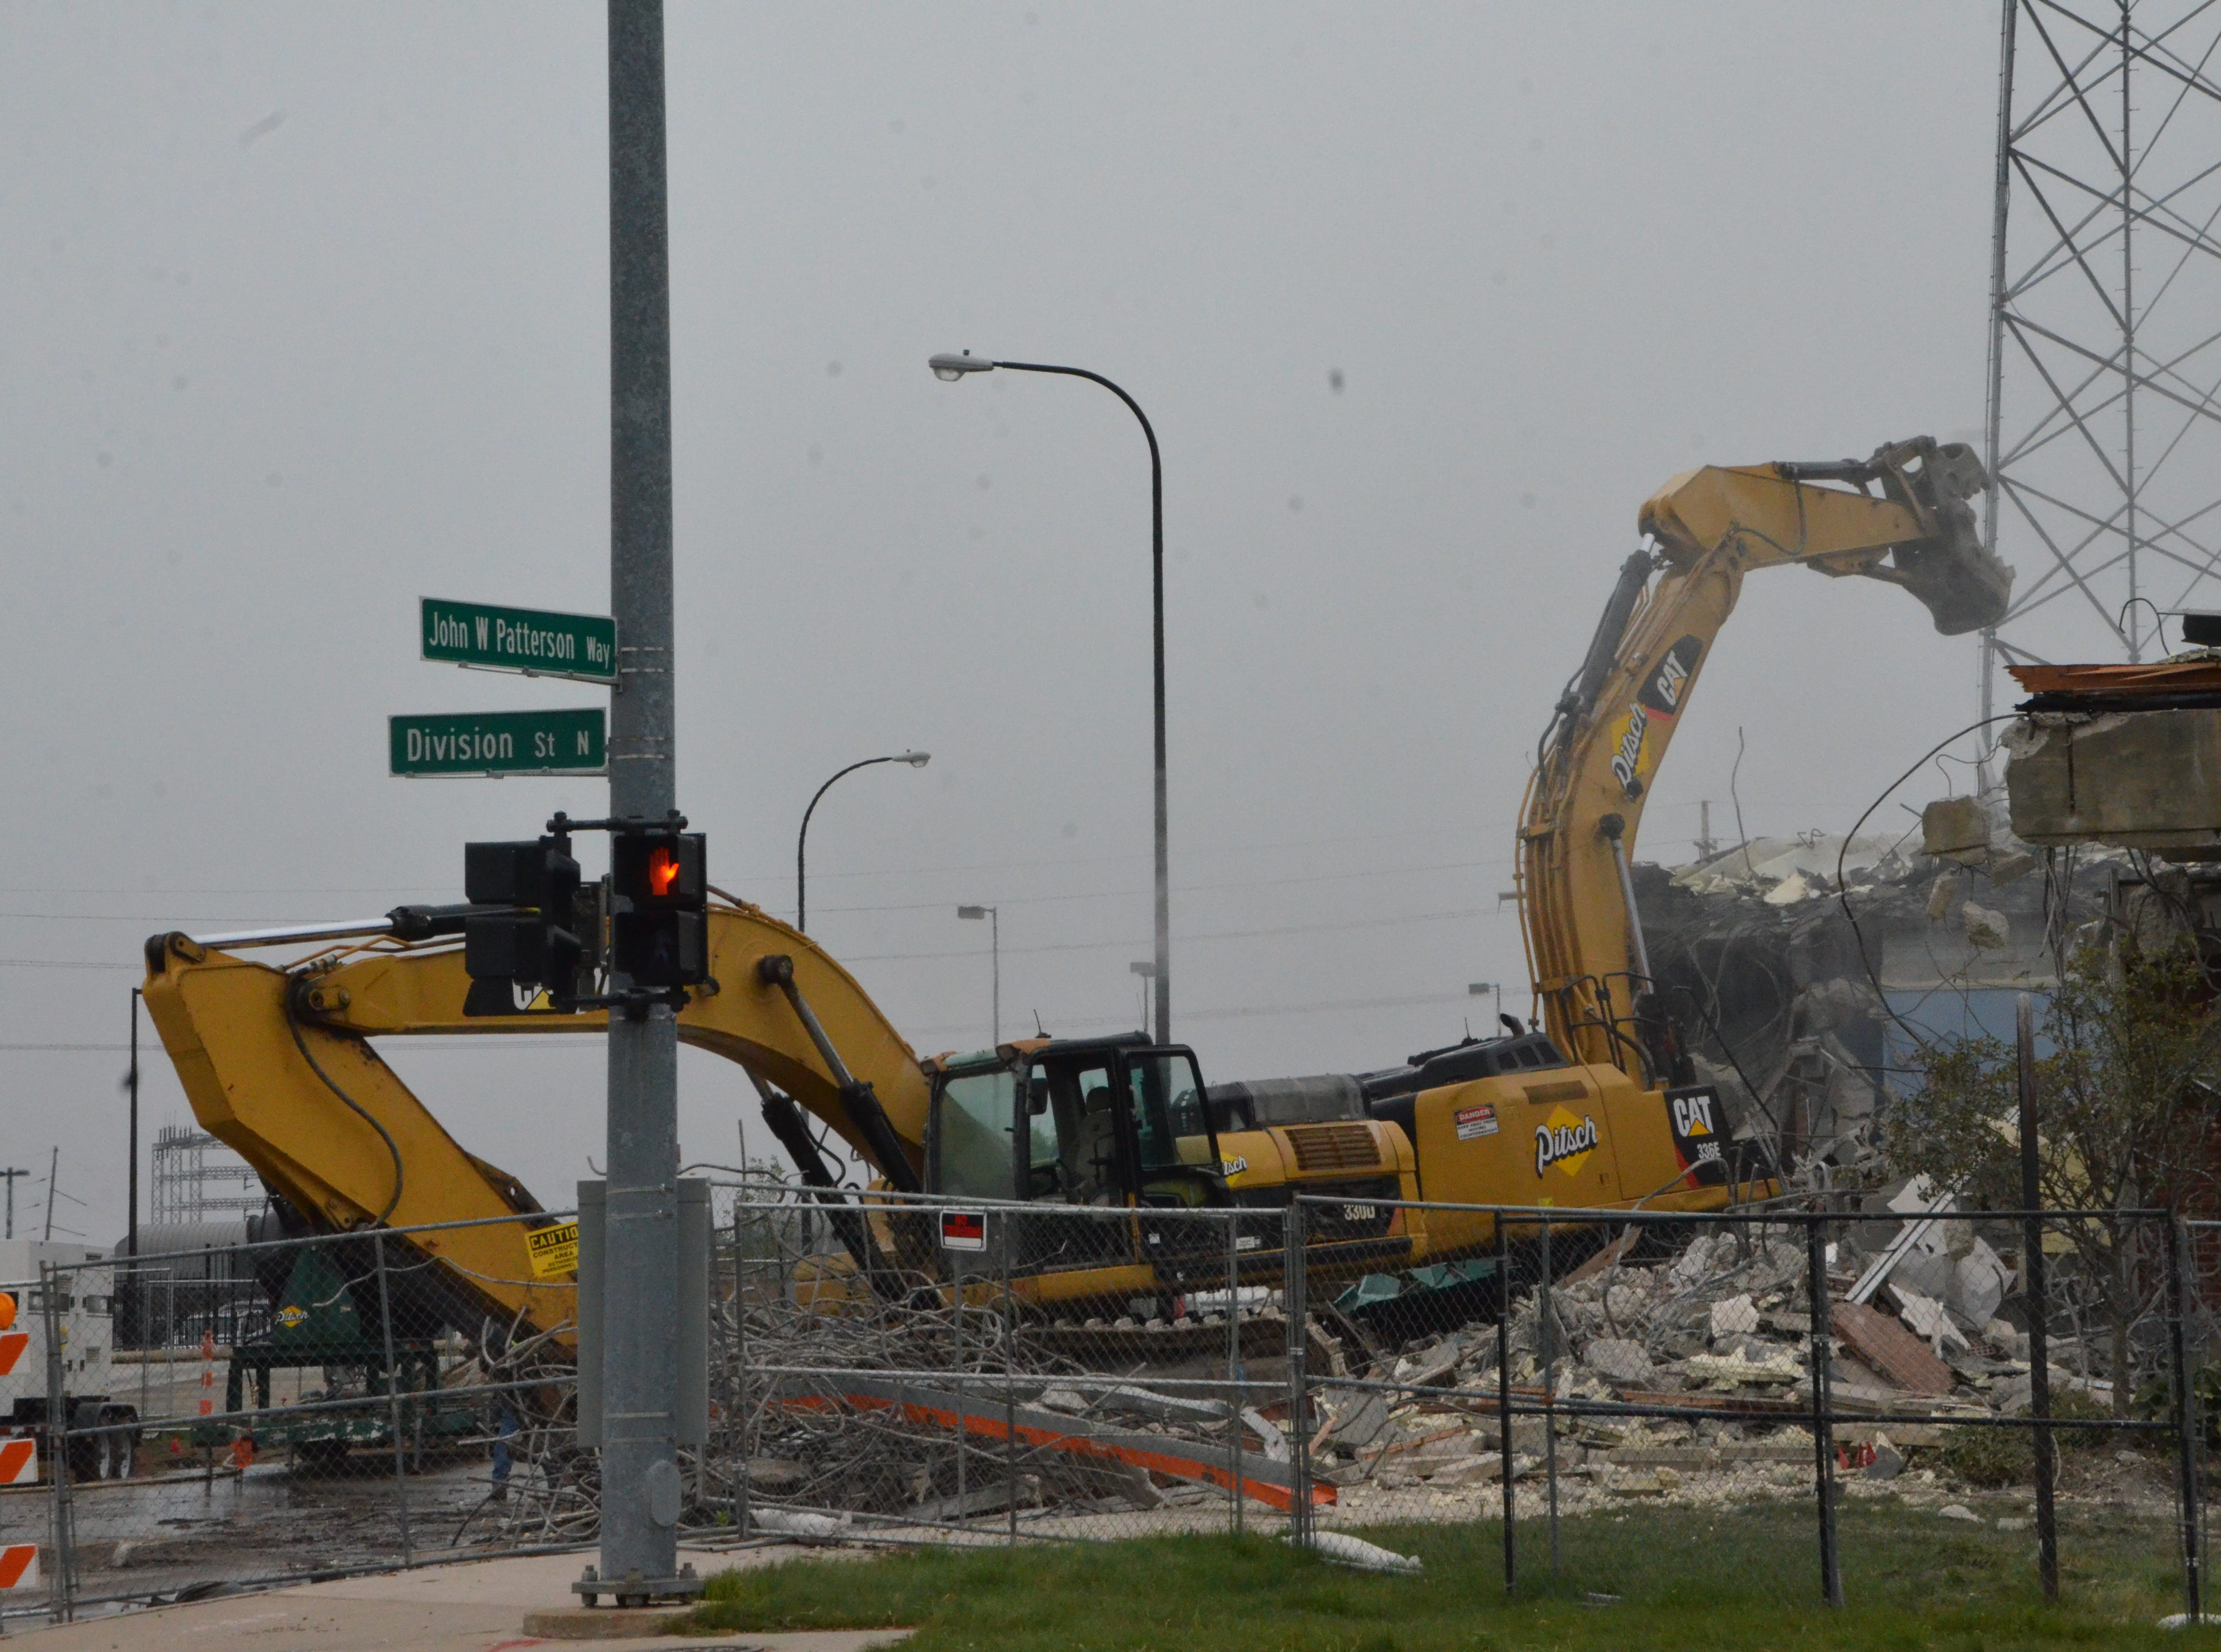 Pitsch Co. of Grand Rapids started to demolish the old Battle Creek Police Department headquarters on Monday, Oct. 1.